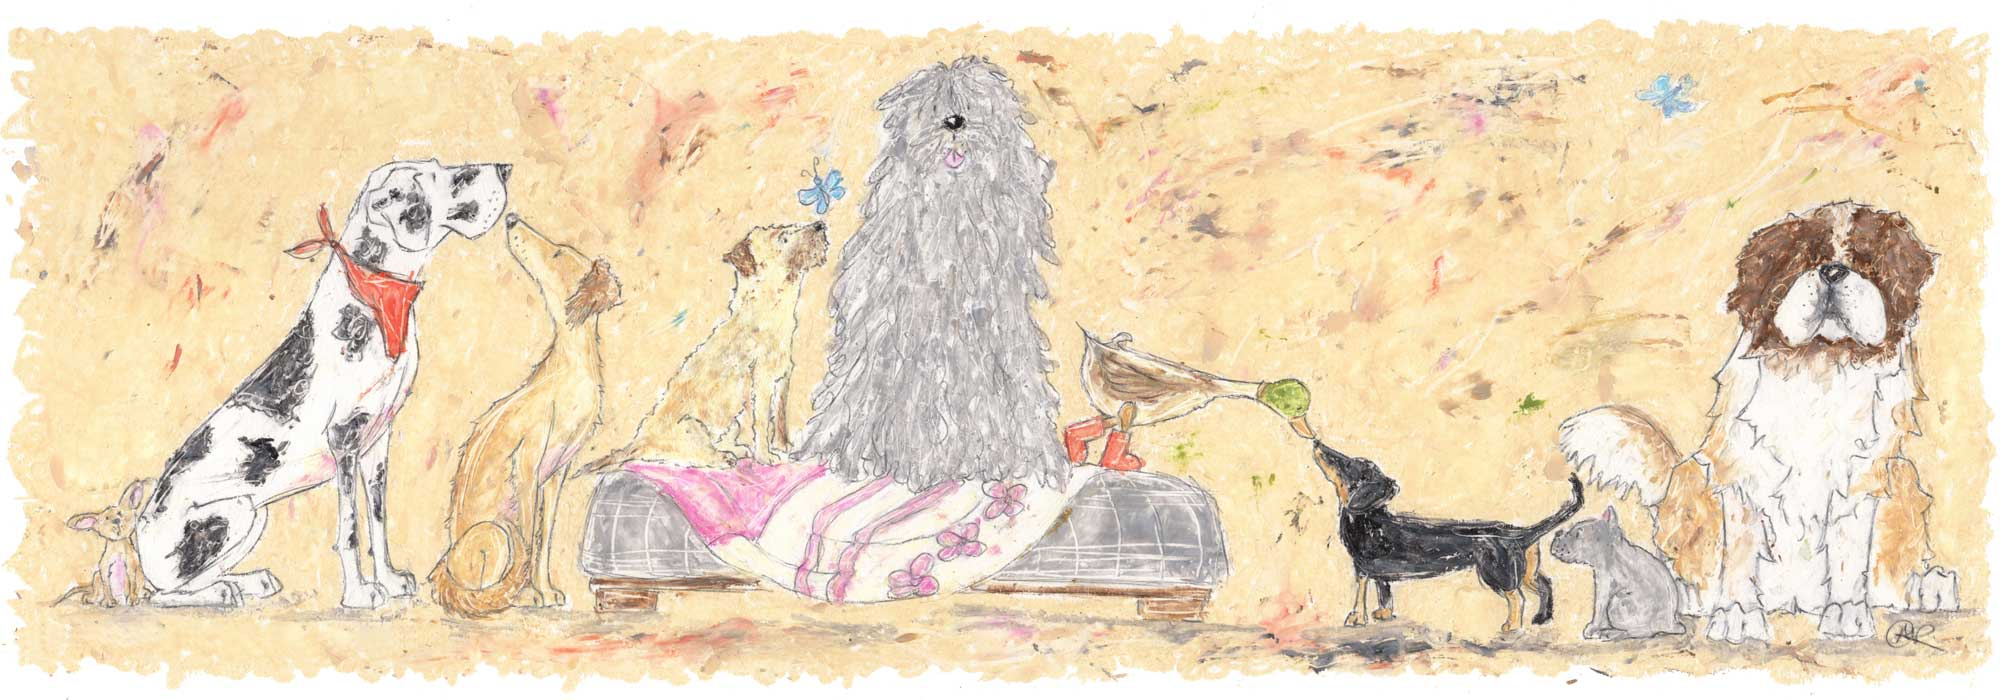 Real Friends Come In All Shapes & Sizes By Amanda Reynolds Art includes a Chihuahua, Black and white Great Dane, beautiful Saluki, sweet Border Terrier, large grey Komondor, a mallard duck and a black and tan dachshund, a small grey Frenchie and a large St Bernard. The variety of dogs sit together in a long line and are all friends.